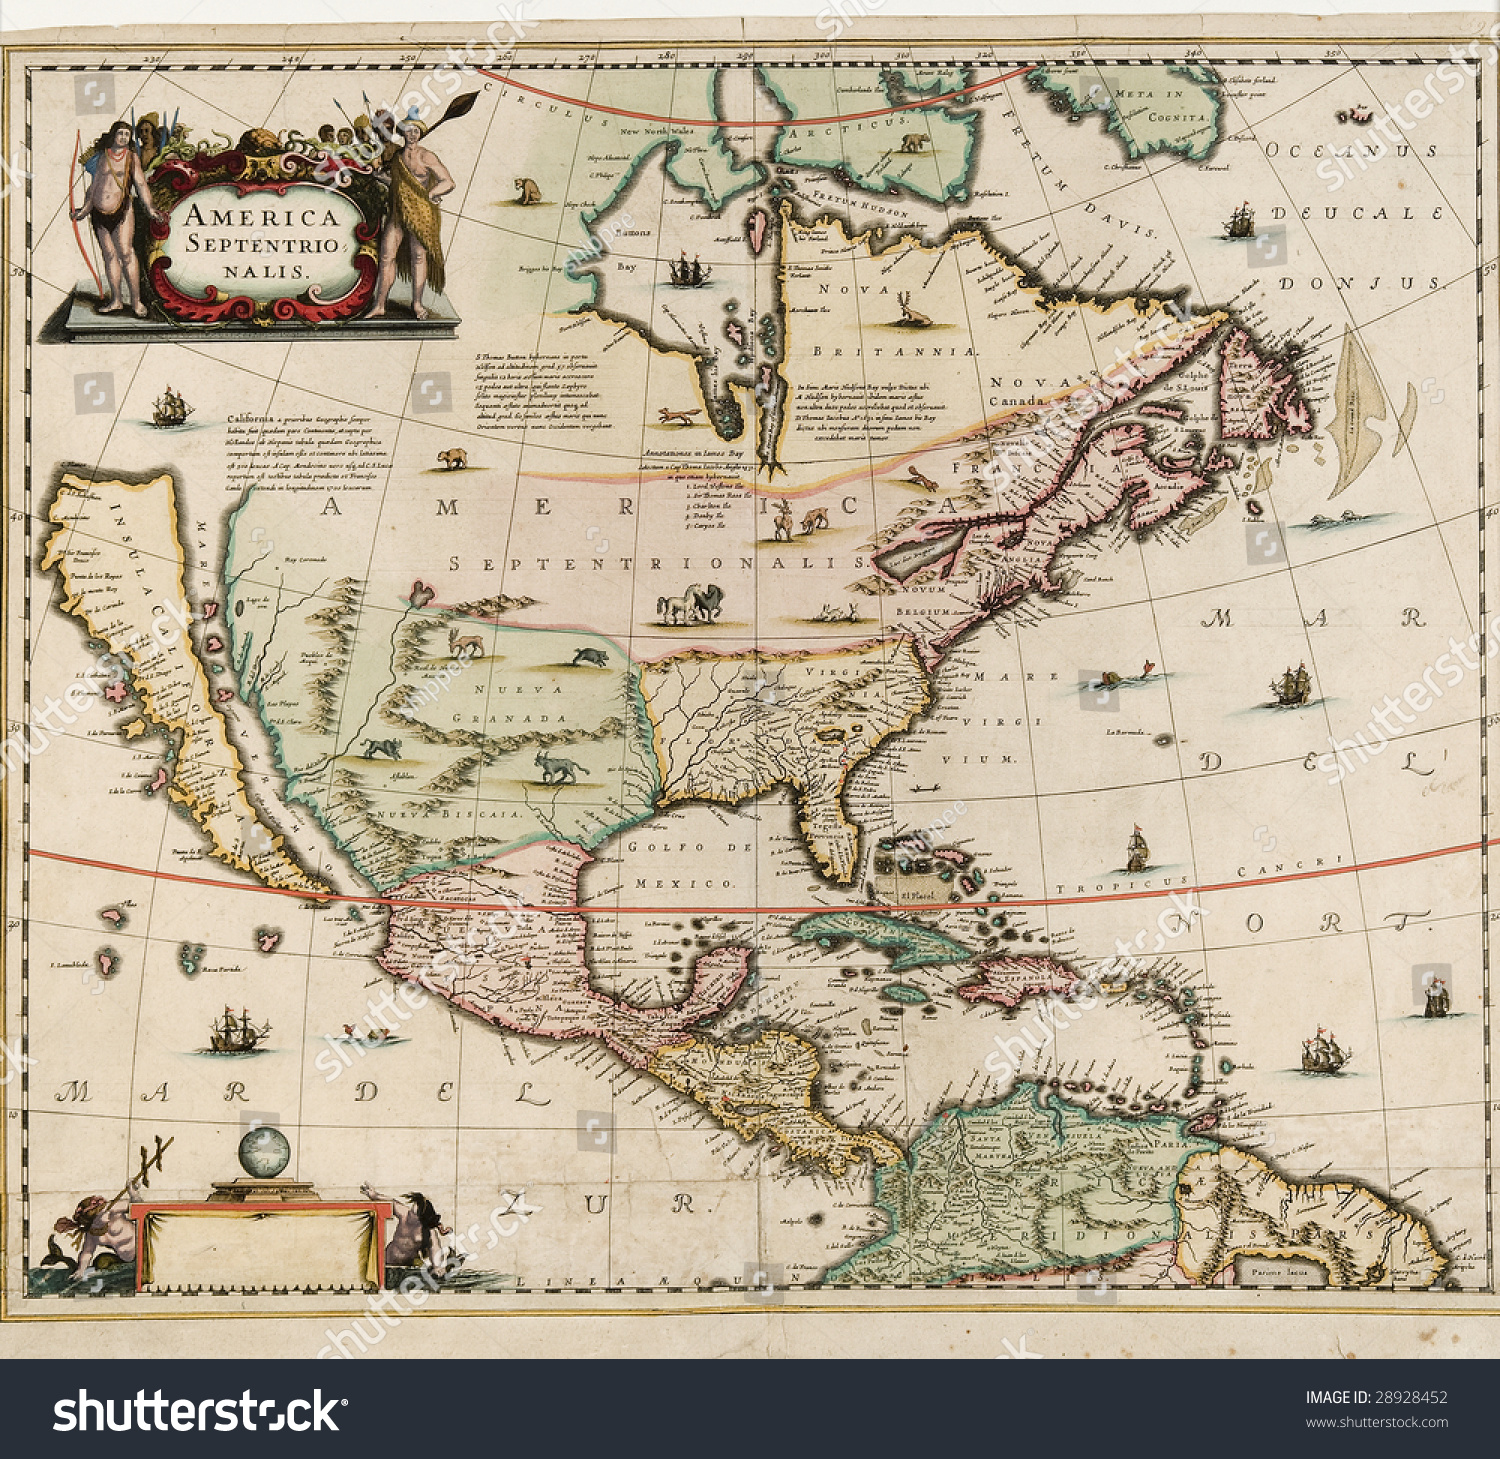 Old world map america septentrio nalis stock photo royalty free old world map america septentrio nalis probably dates around early 1600s showing north america gumiabroncs Gallery